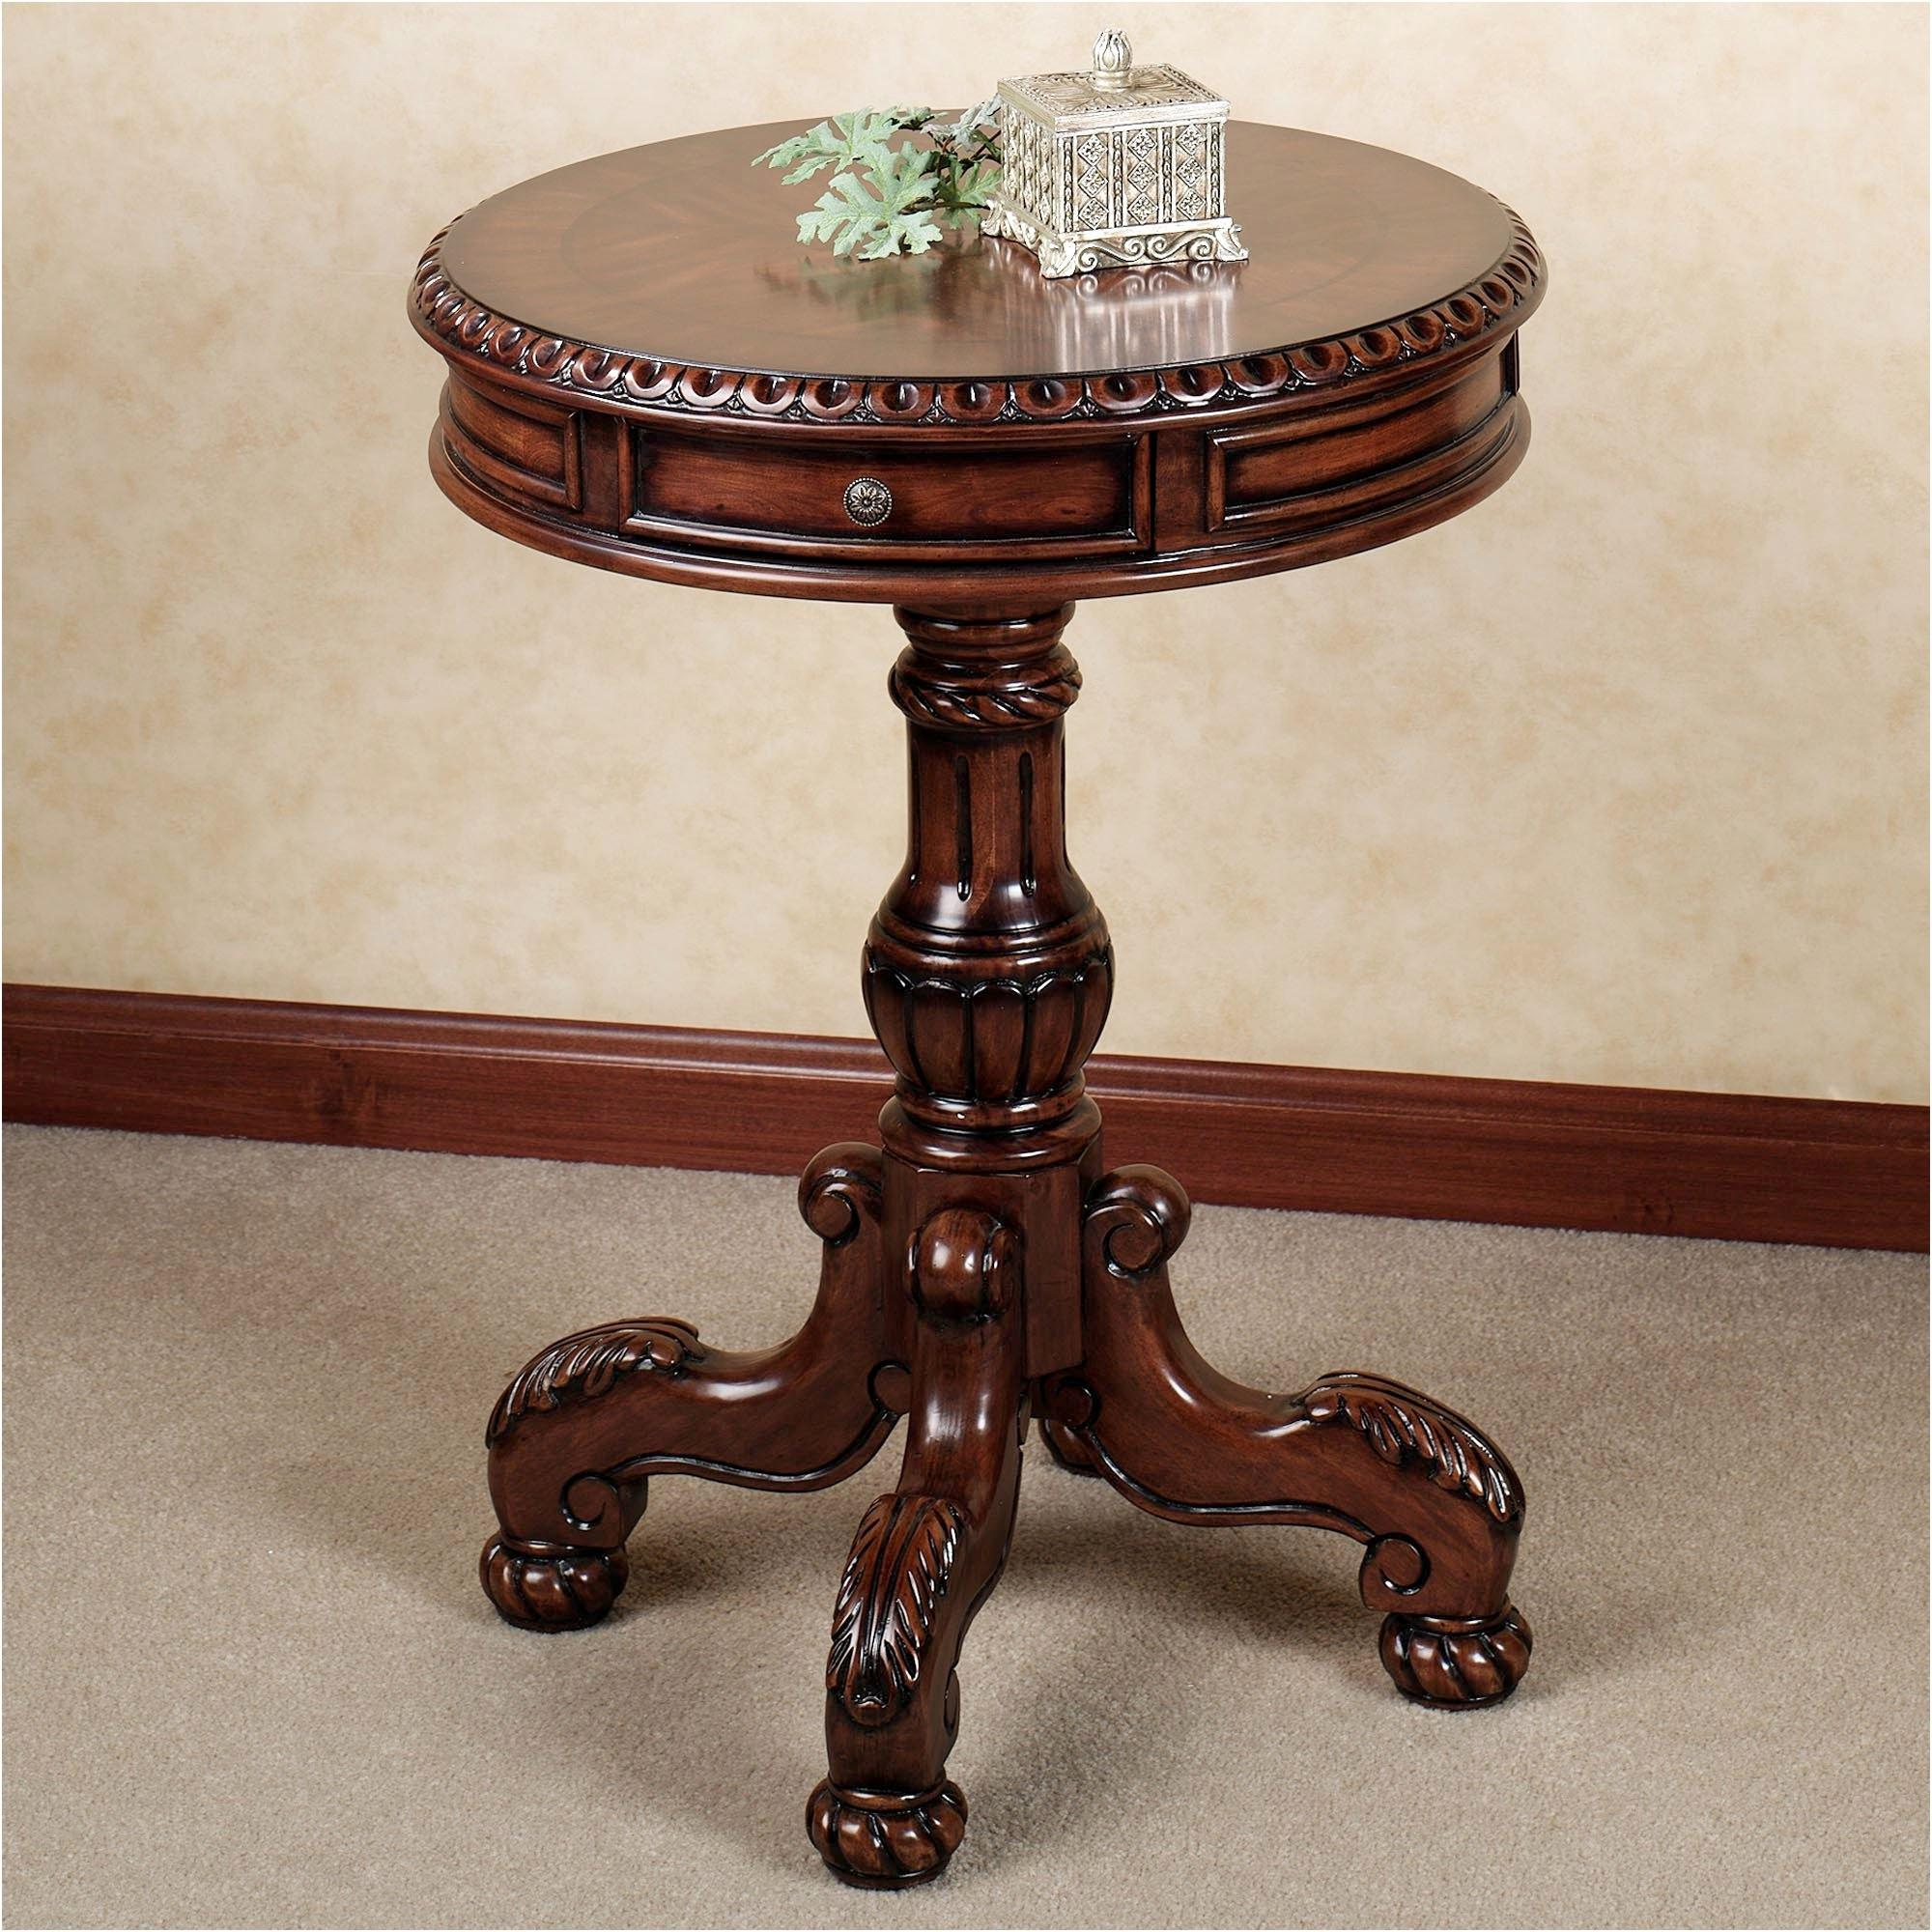 brown round accent table discover dartmoor design best antique back exquisite metal chairside nesting set tables ashley bedroom furniture butler desk gold console pulaski reviews